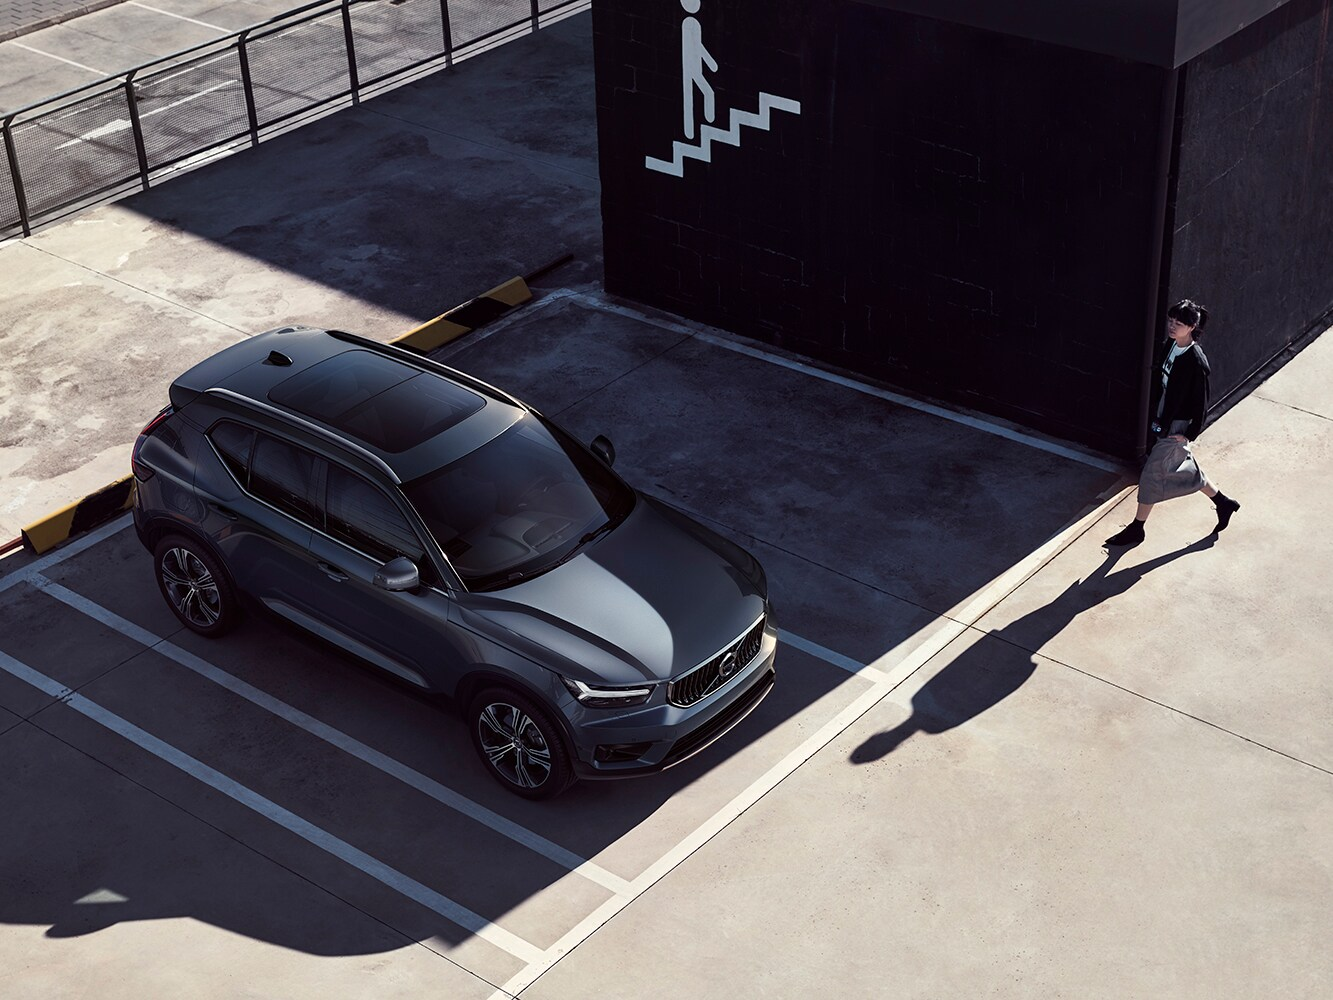 A dark grey Volvo XC40 R-Design trim parked in the shadow of a building